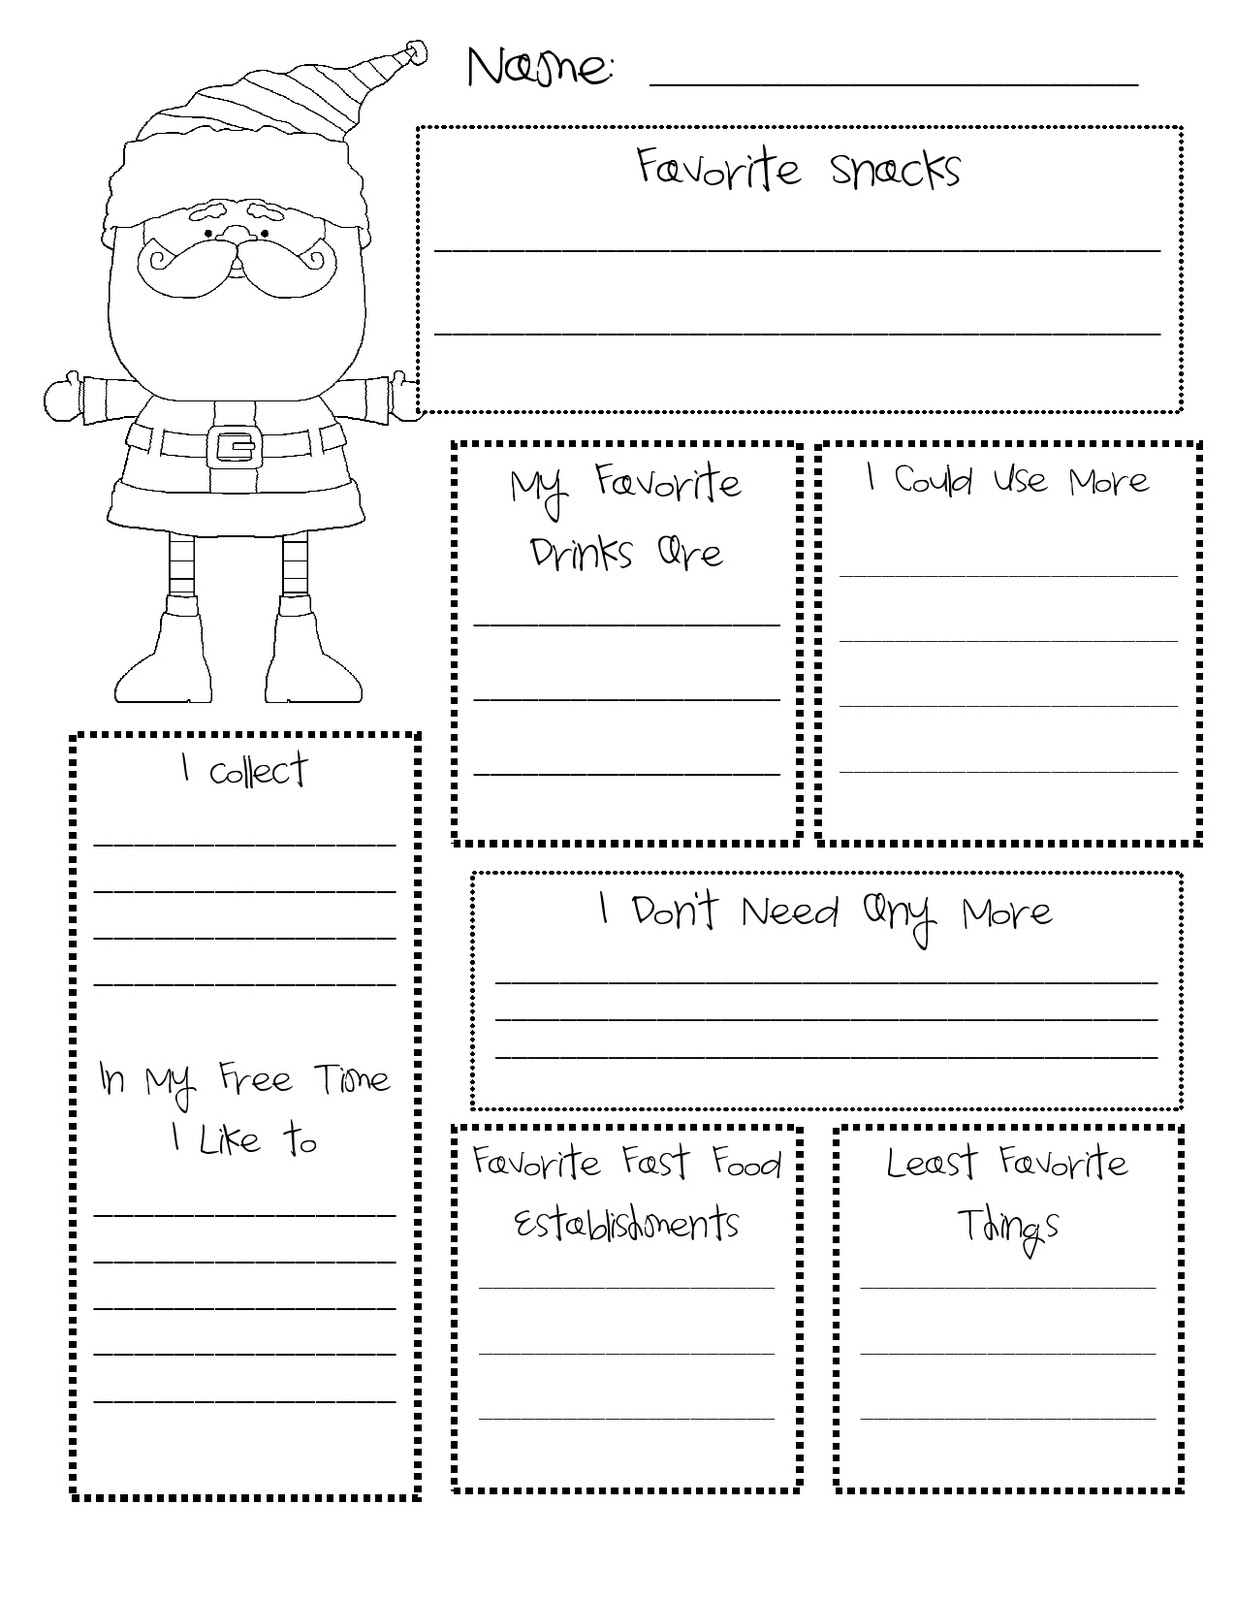 Secret Santa Wish List Template | myideasbedroom.com